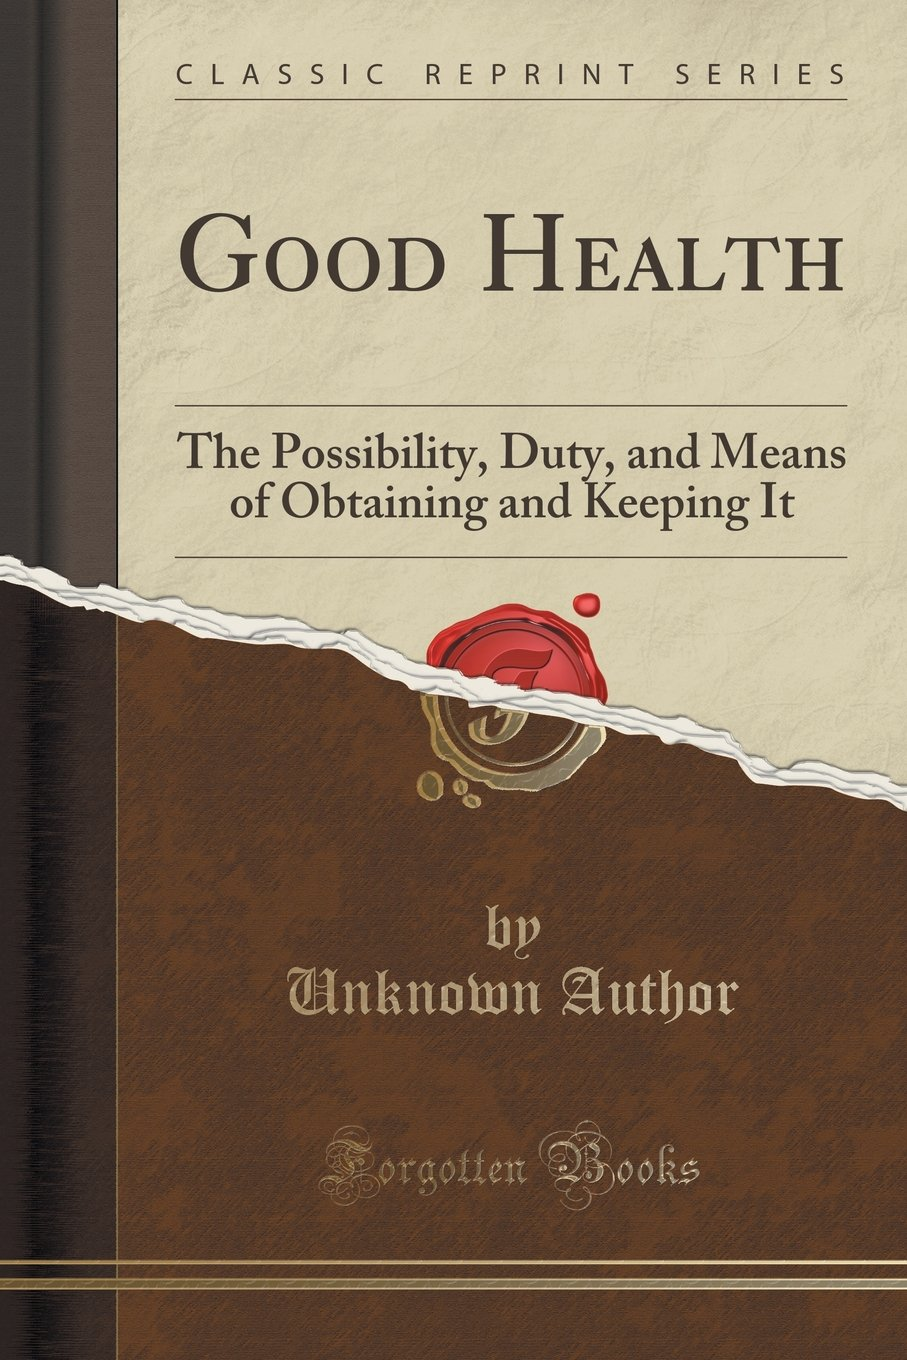 Good Health: The Possibility, Duty, and Means of Obtaining and Keeping It (Classic Reprint) pdf